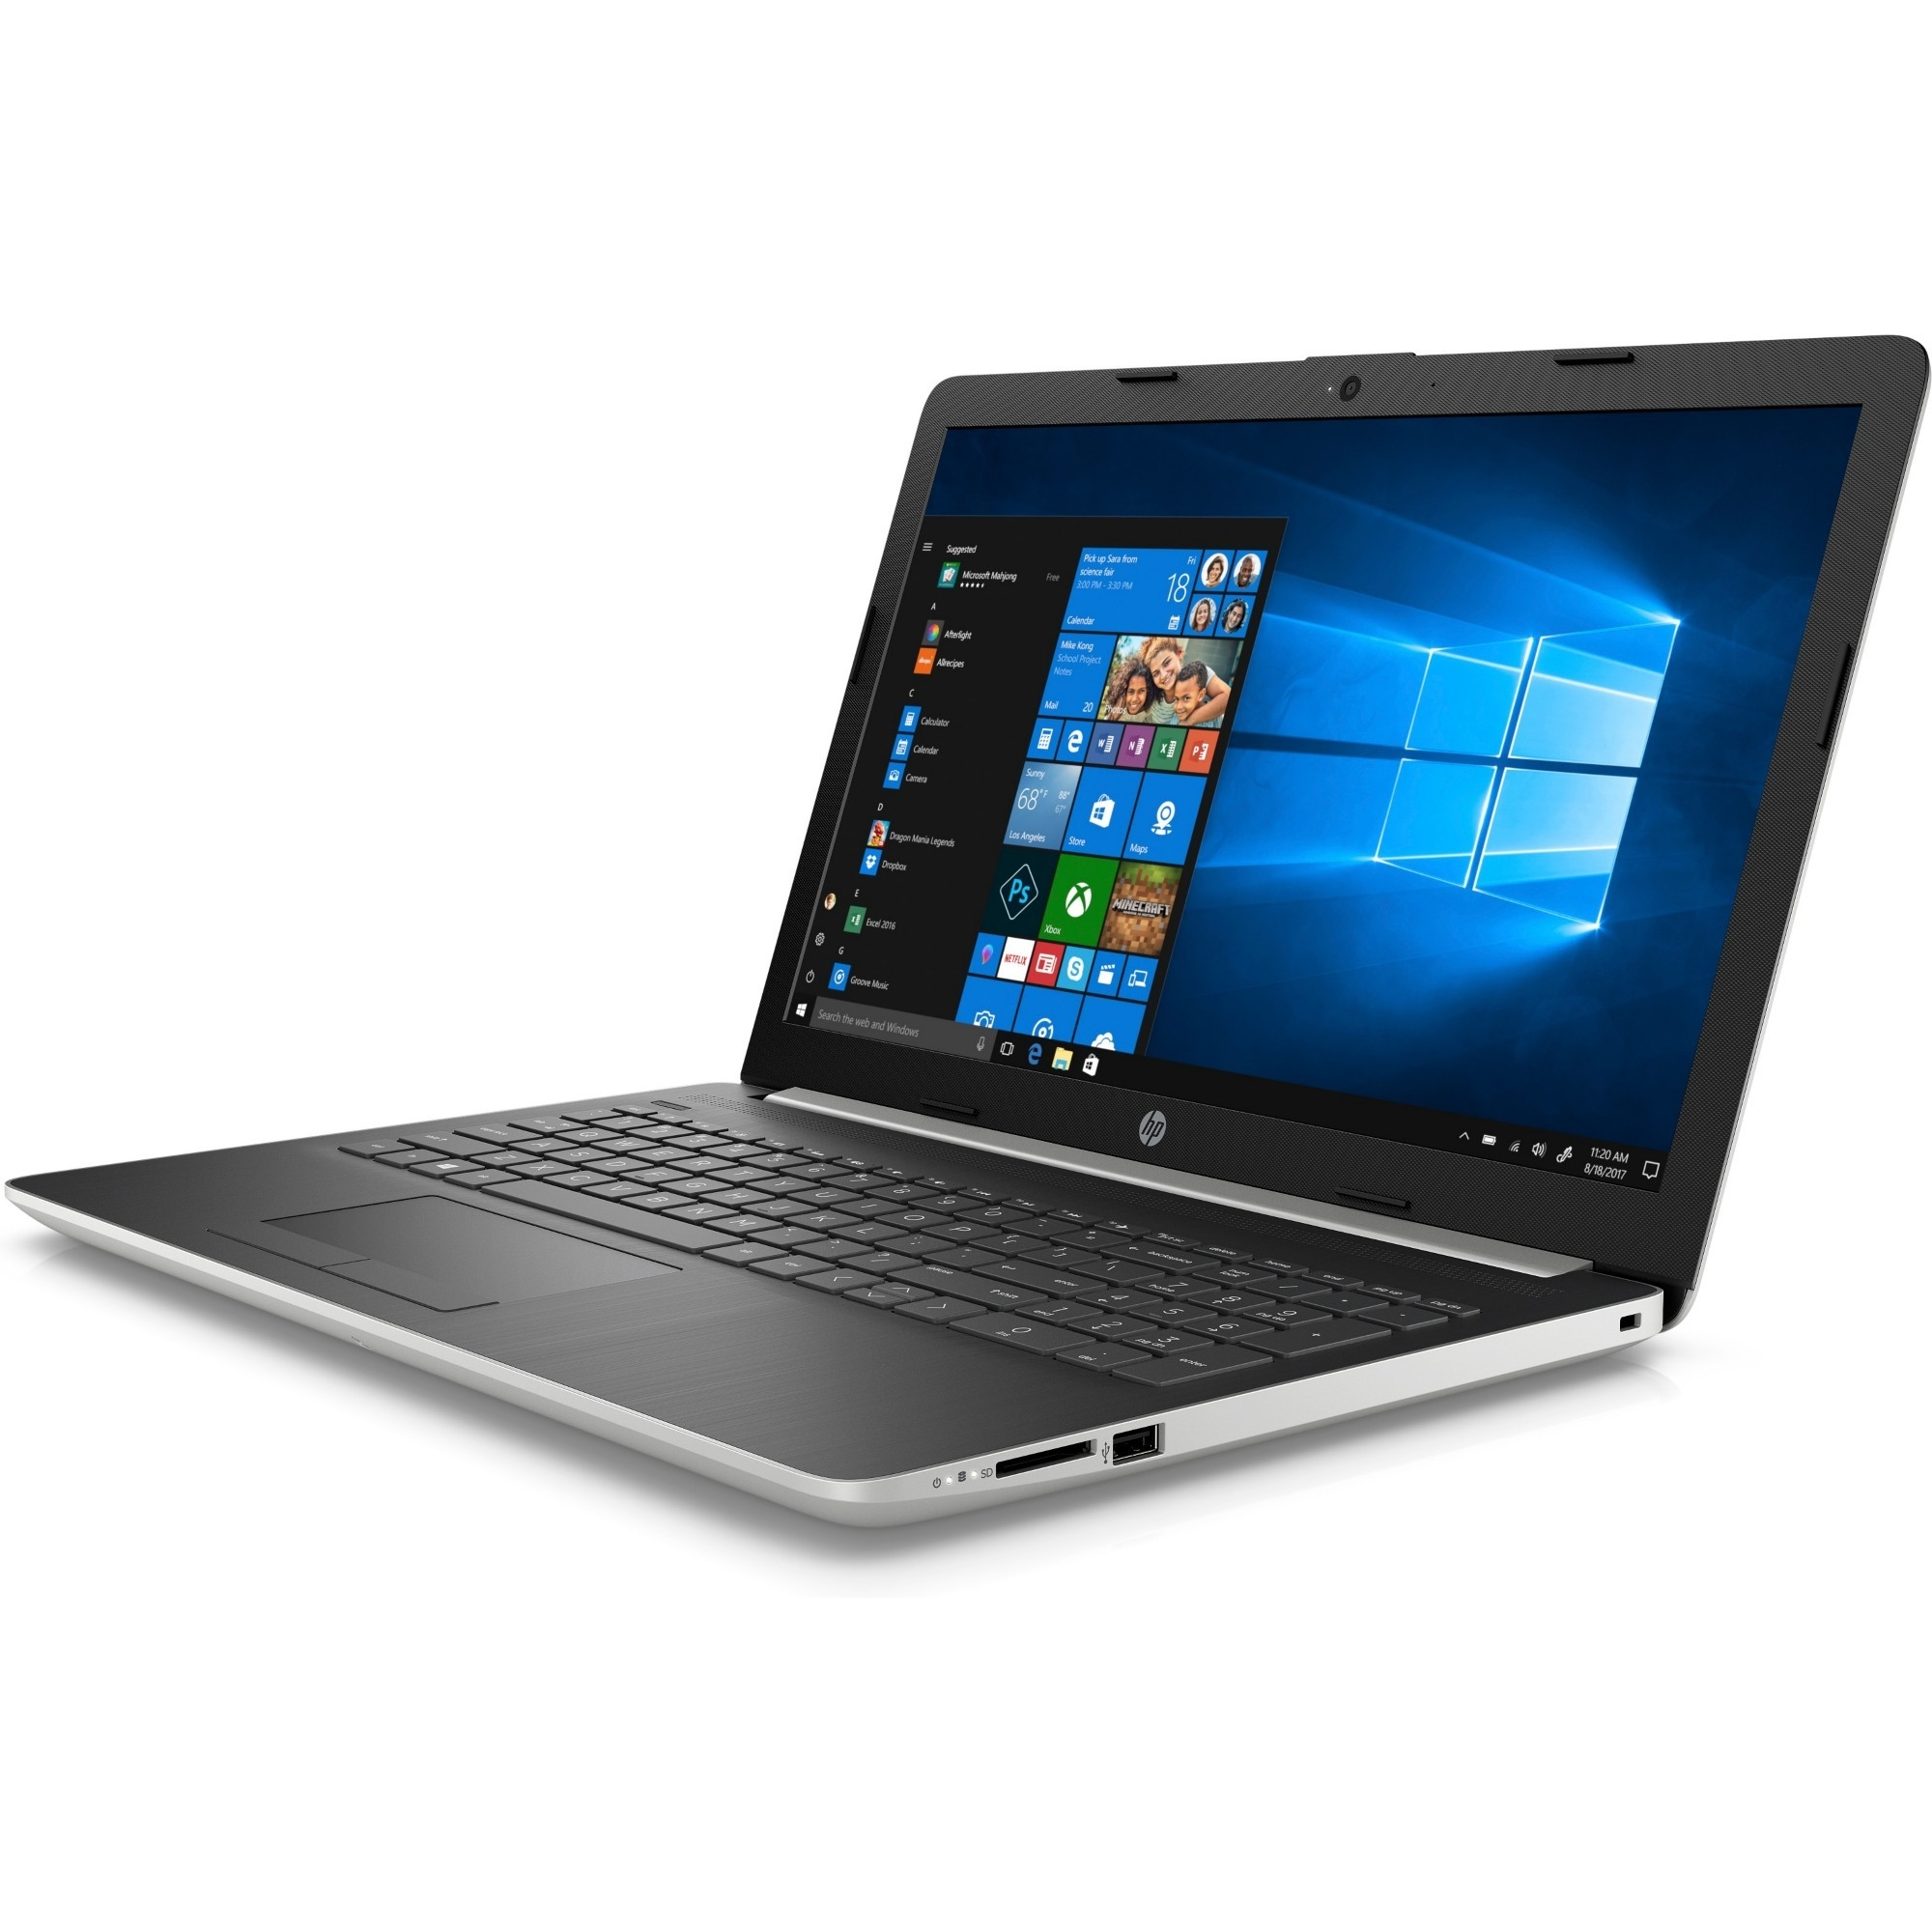 "HP 15-da1062nt 6LK89EA I7-8565U 8GB 512GB SSD 4GB MX130 15.6"" FREEDOS SİYAH NOTEBOOK"